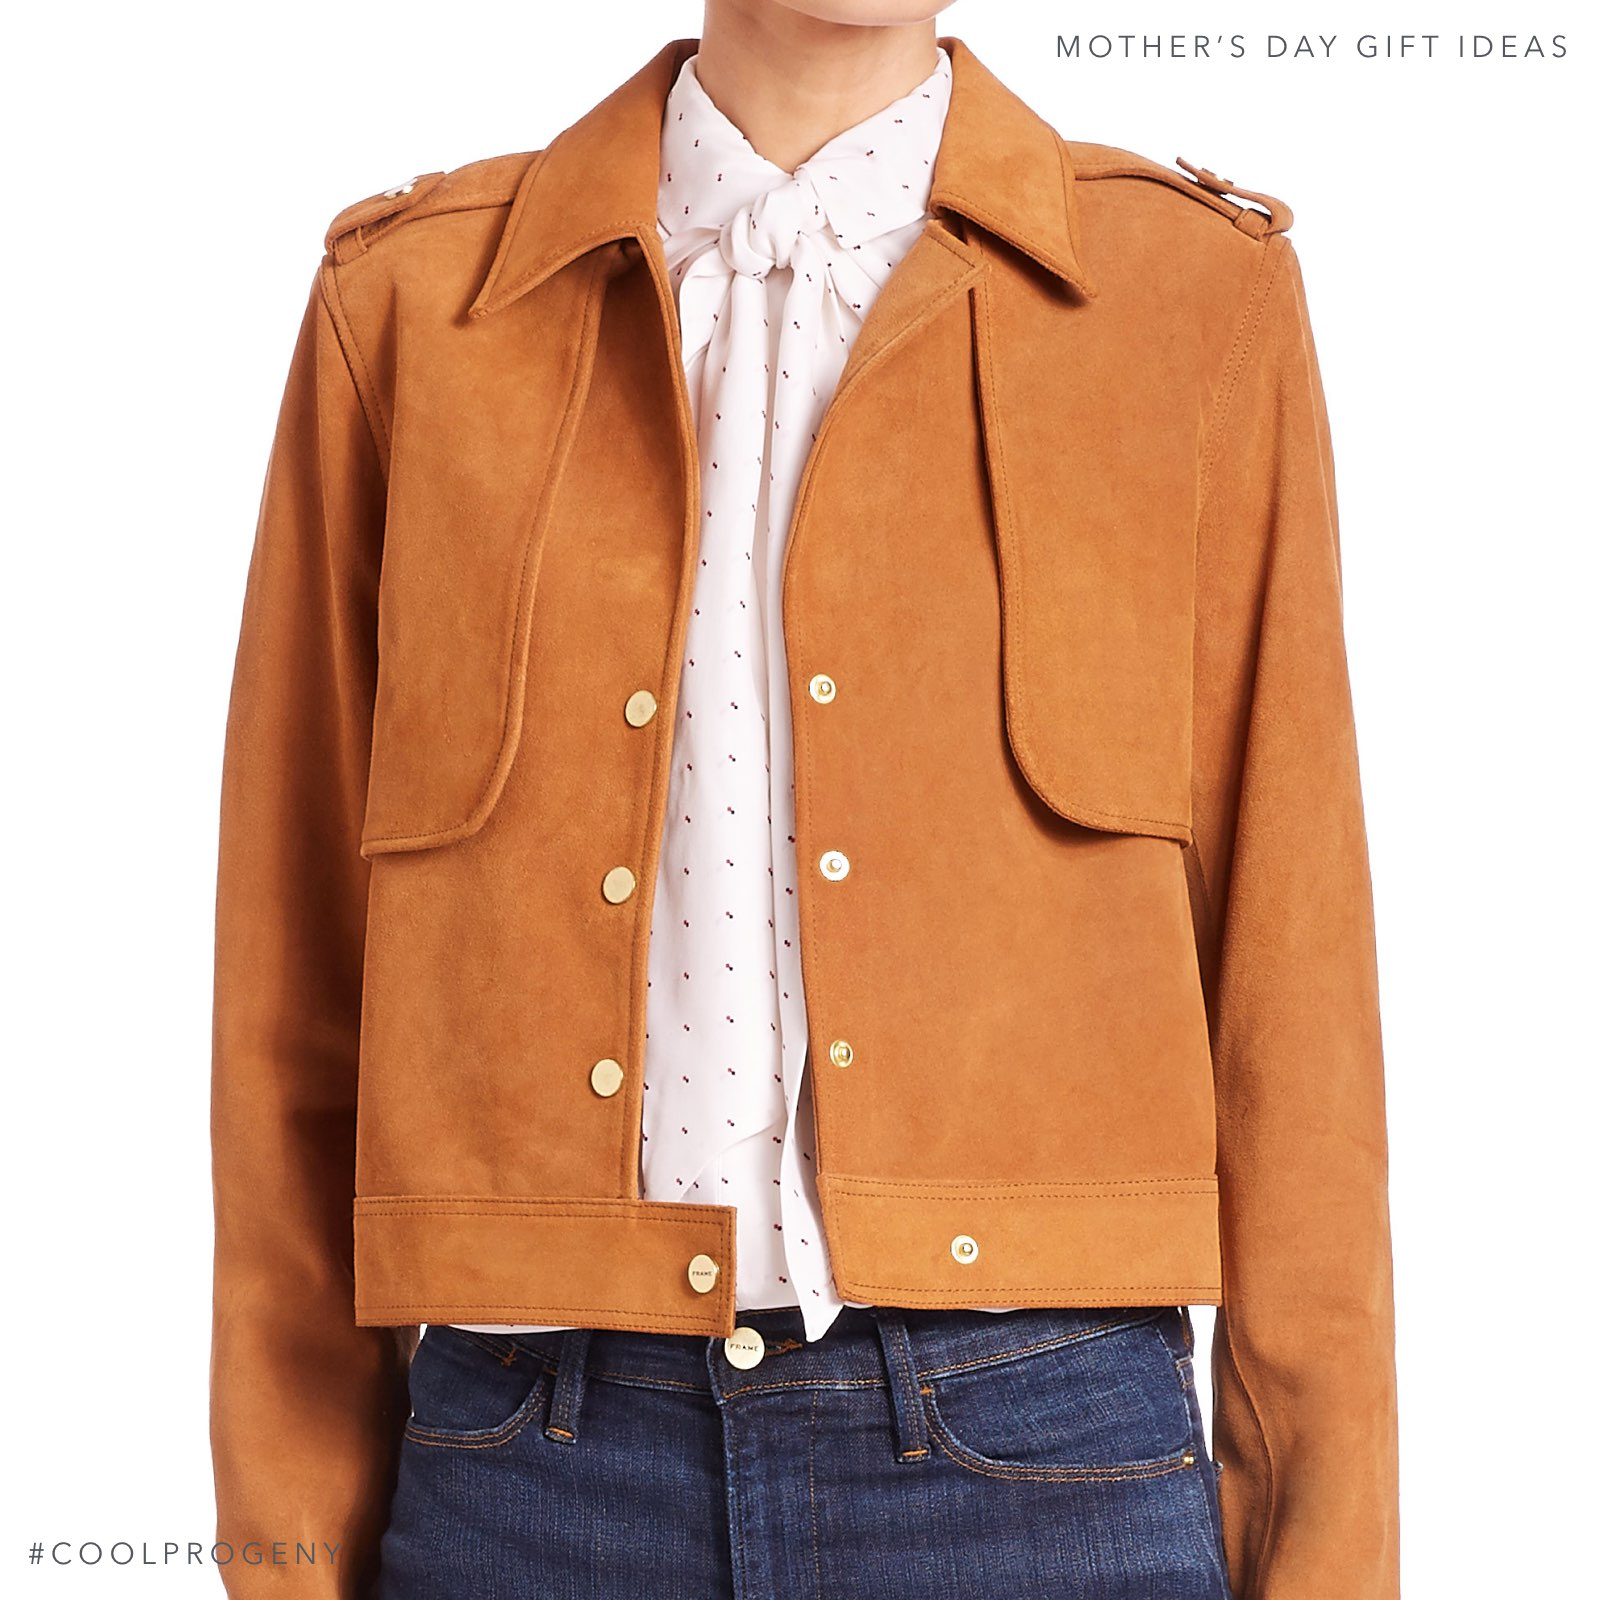 Mother's Day Gift Idea - (cool) progeny - Frame cropped suede jacket, available from Ruth Shaw